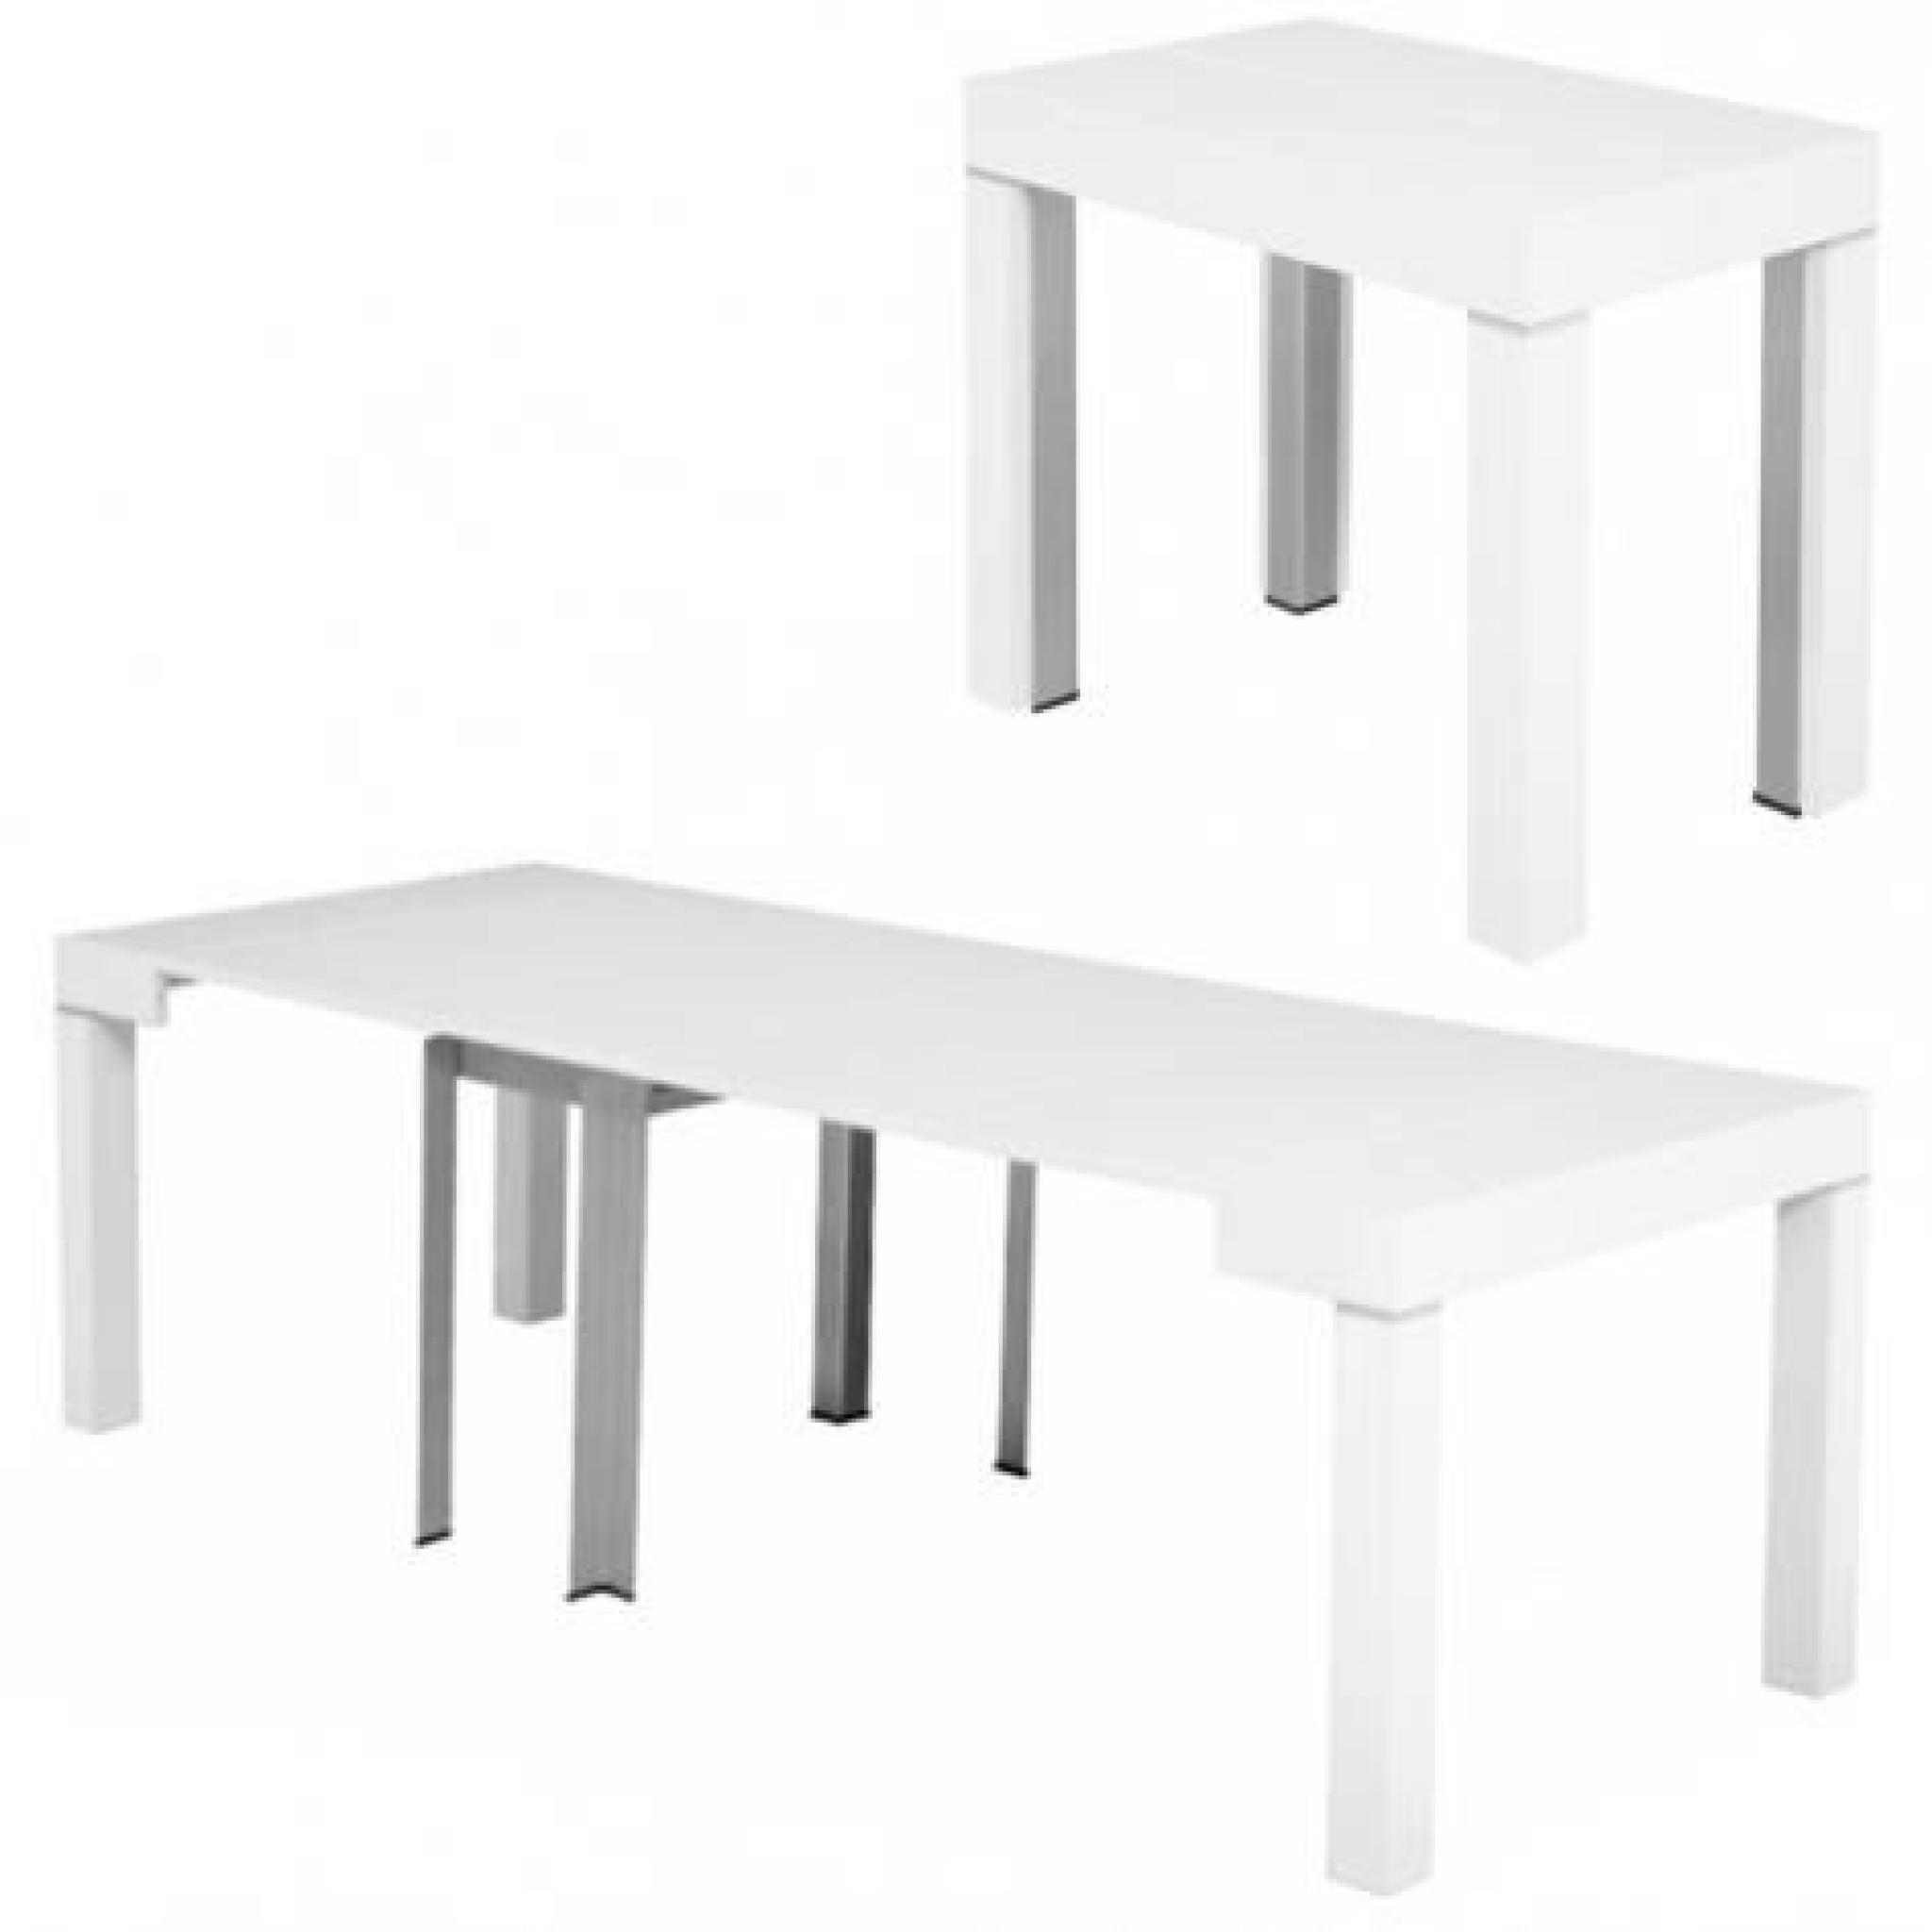 table console extensible blanche laqu e 4 rallonges alesia achat vente ensemble salle a manger. Black Bedroom Furniture Sets. Home Design Ideas